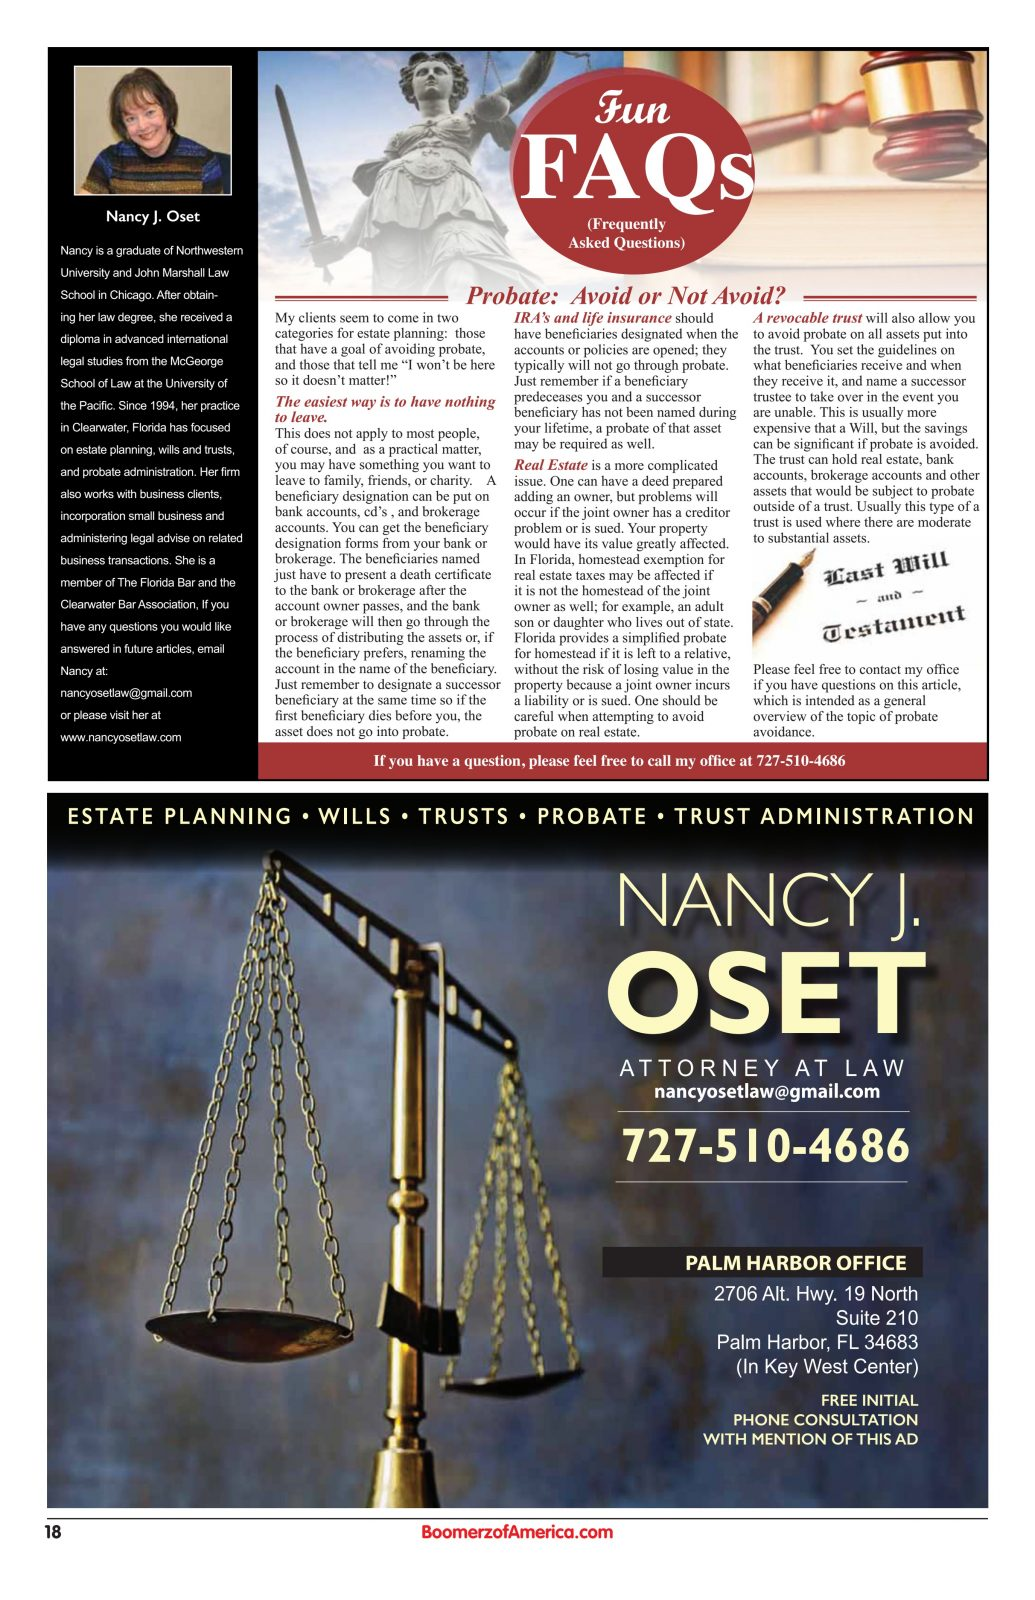 Nancy-Oset-Attorney-at-Law-Article-June-2019